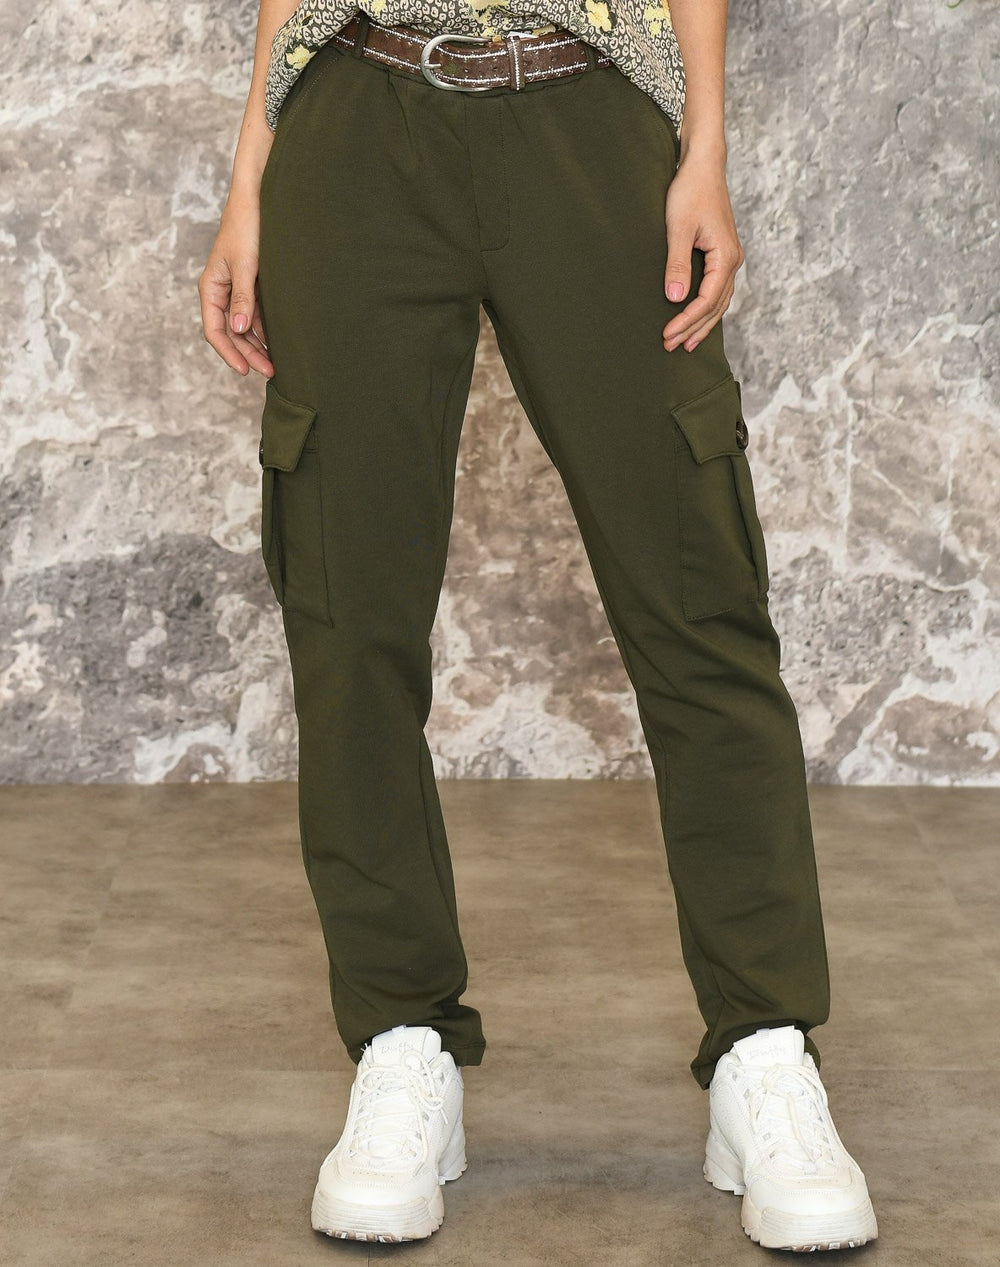 Ofelia Lara new pants hunter - Online-Mode